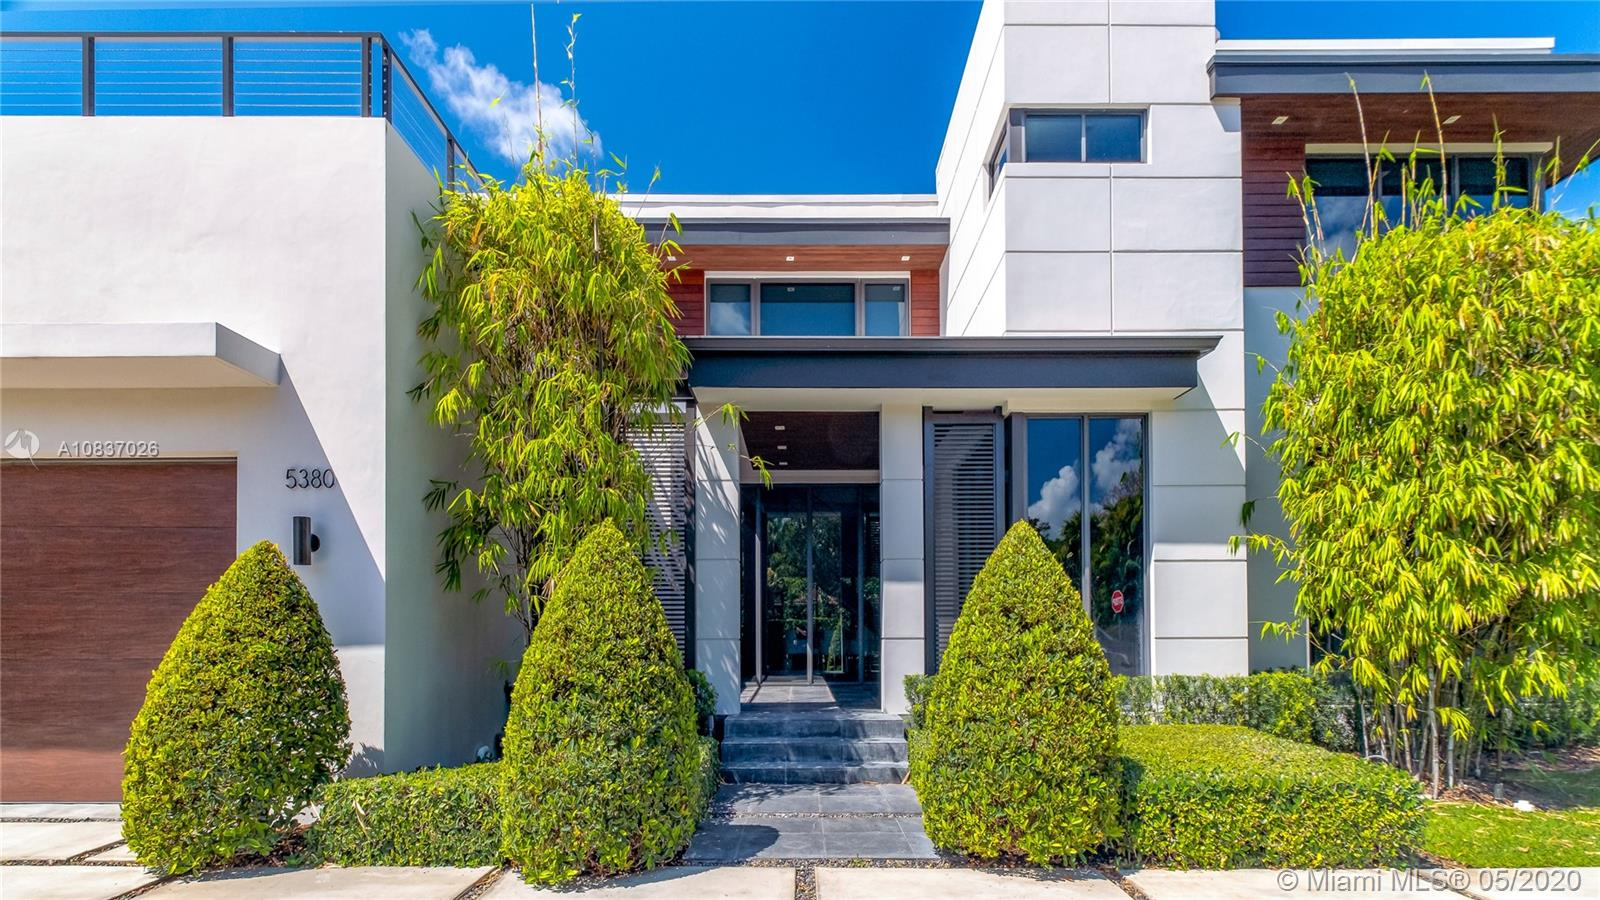 "Miami Modern Masterpiece occupies a coveted High Pines corner lot. Built for the Ages in 2015 of reinforced concrete w/impact doors/windows & epay façade, this generously scaled 2-story residence is bright & airy, voluminous & expansive w/10' ceilings & 3'x3' Italian porcelain floors. Flow-thru interiors heighten the sense of contemporary luxury. Crisp whites & elegant grays unify understated steel, wood & glass elements. Impeccable Subzero/Wolfe kitchen; simply grand Master suite. Staged for gracious indoor/outdoor entertaining w/vast covered & open terraces, entry fountain, 2-car garage w/finished floors, plunge pool & mature ""privacy"" landscaping. A sensational turn-key residence located in a close-in, highly sought, walkable enclave w/top-tier schools."